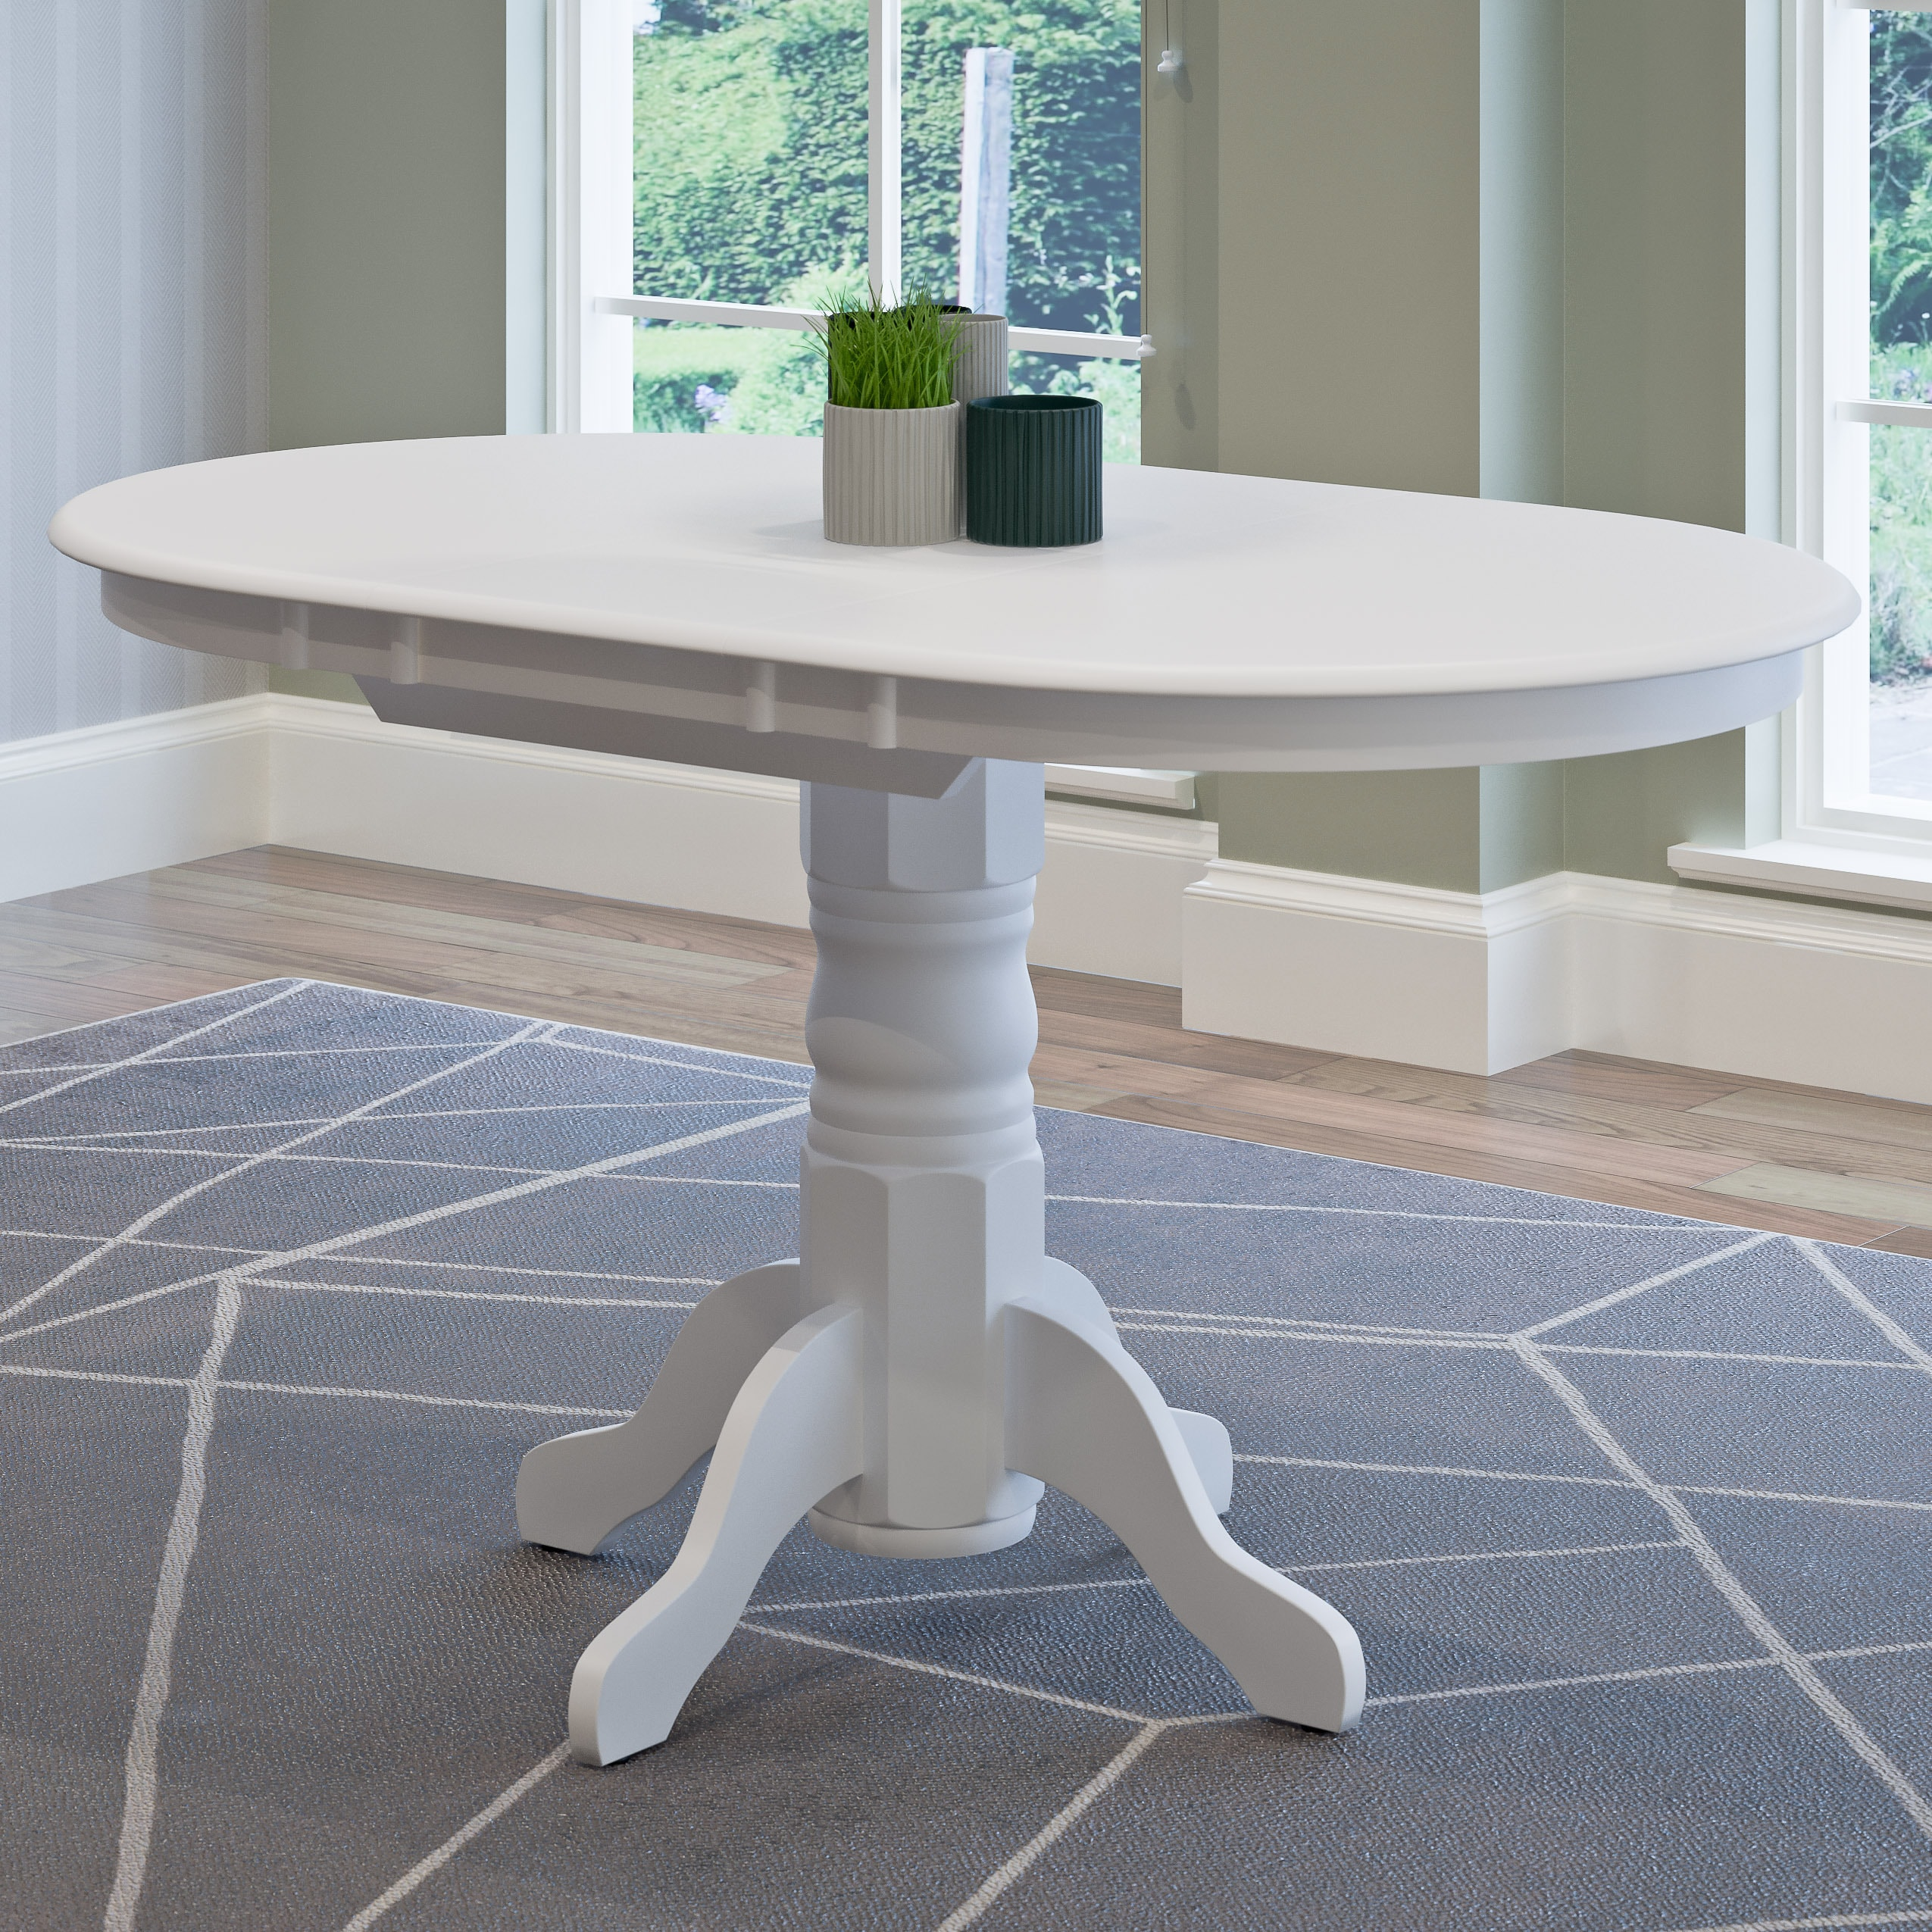 The Gray Barn Badger Hill White Extendable Oval Pedestal Dining Table